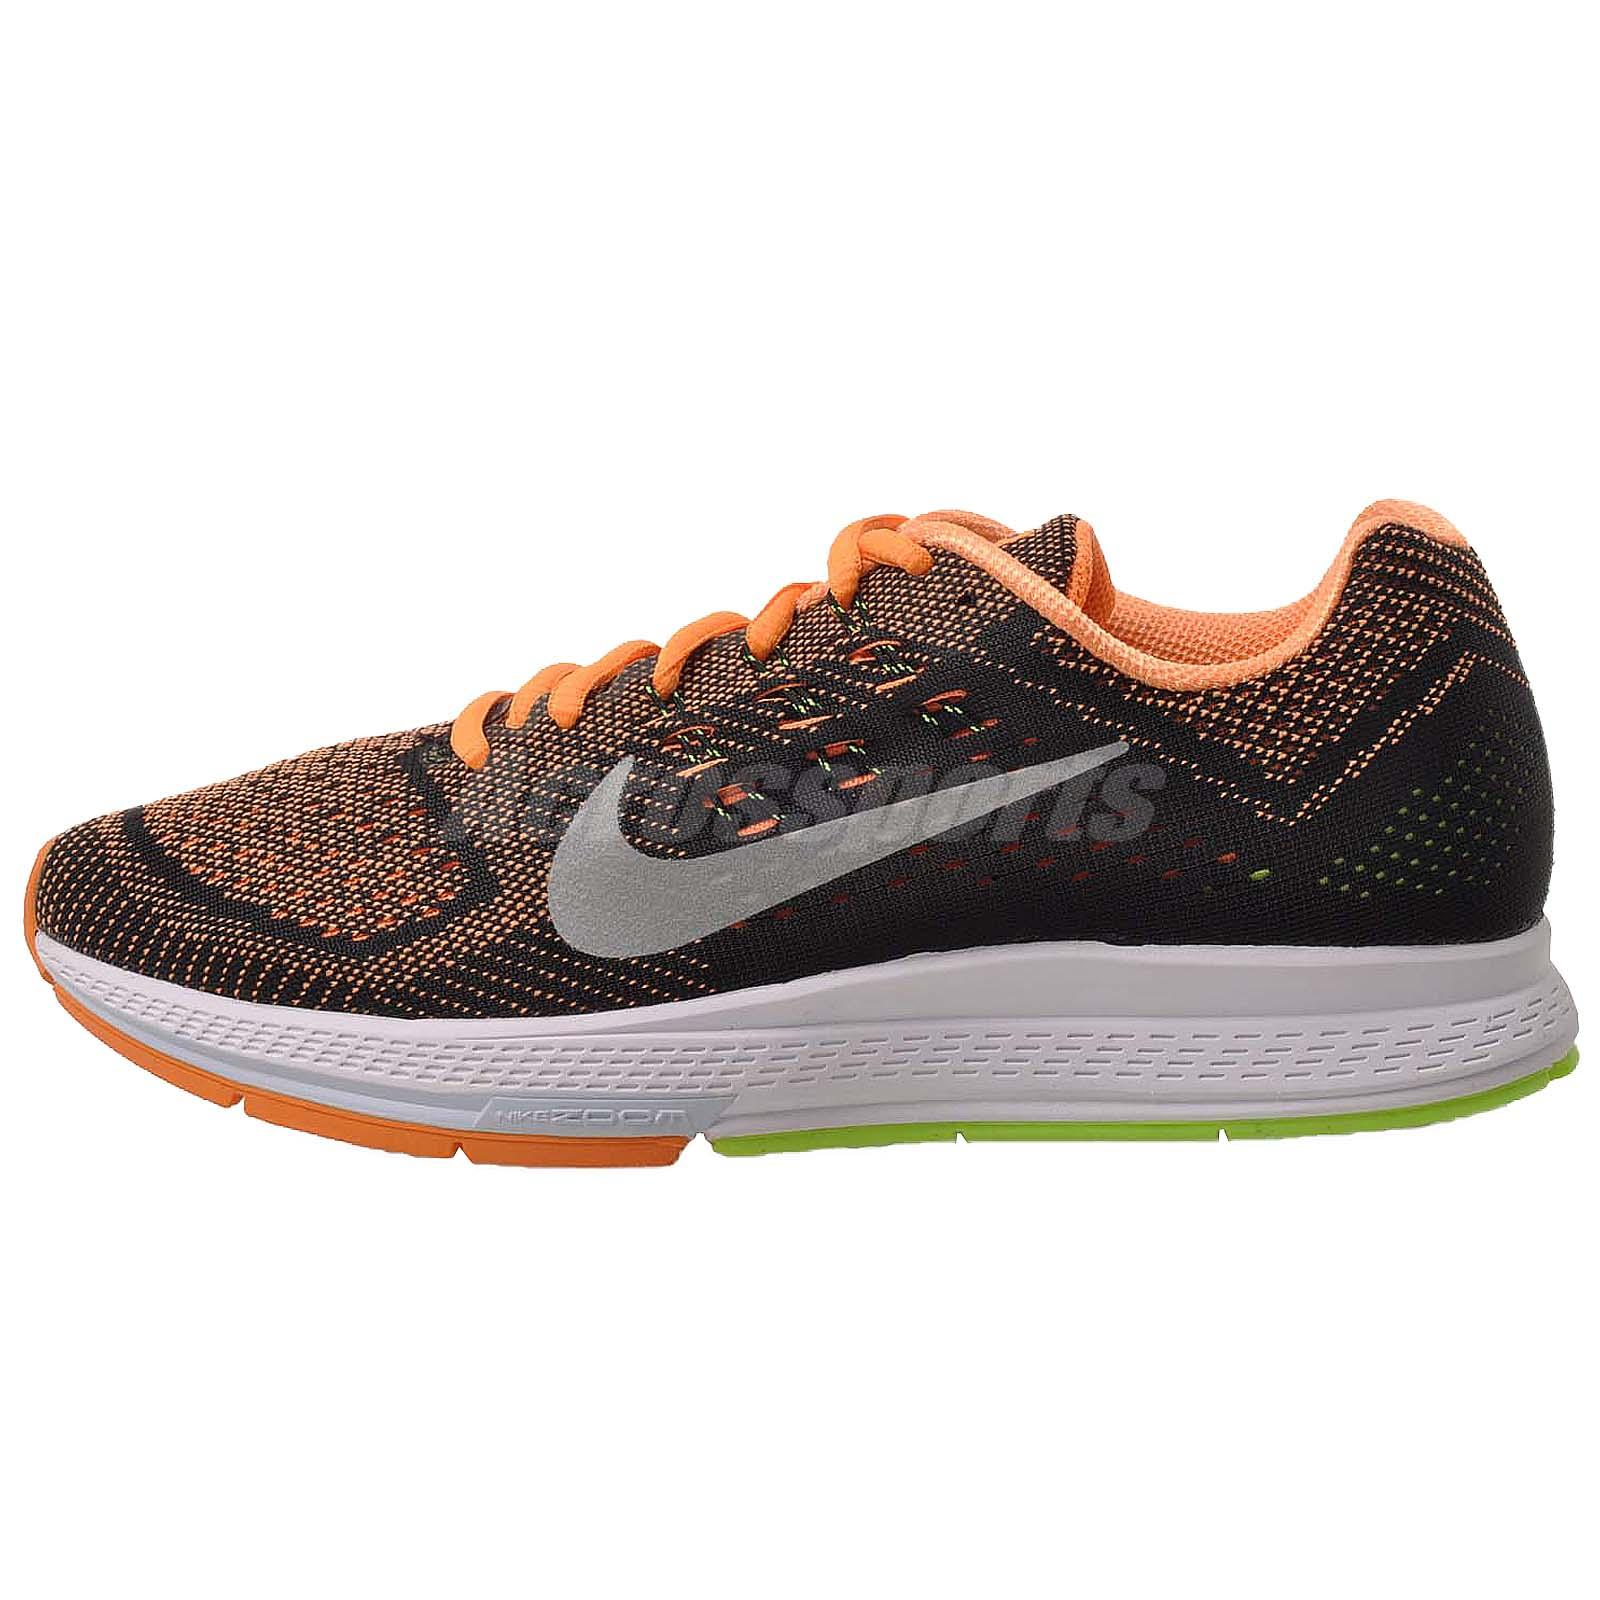 quality design 6c9fc 46fb1 Nike Air Zoom Structure 18 Mens Running Shoes 2015 Sneakers 683731-801